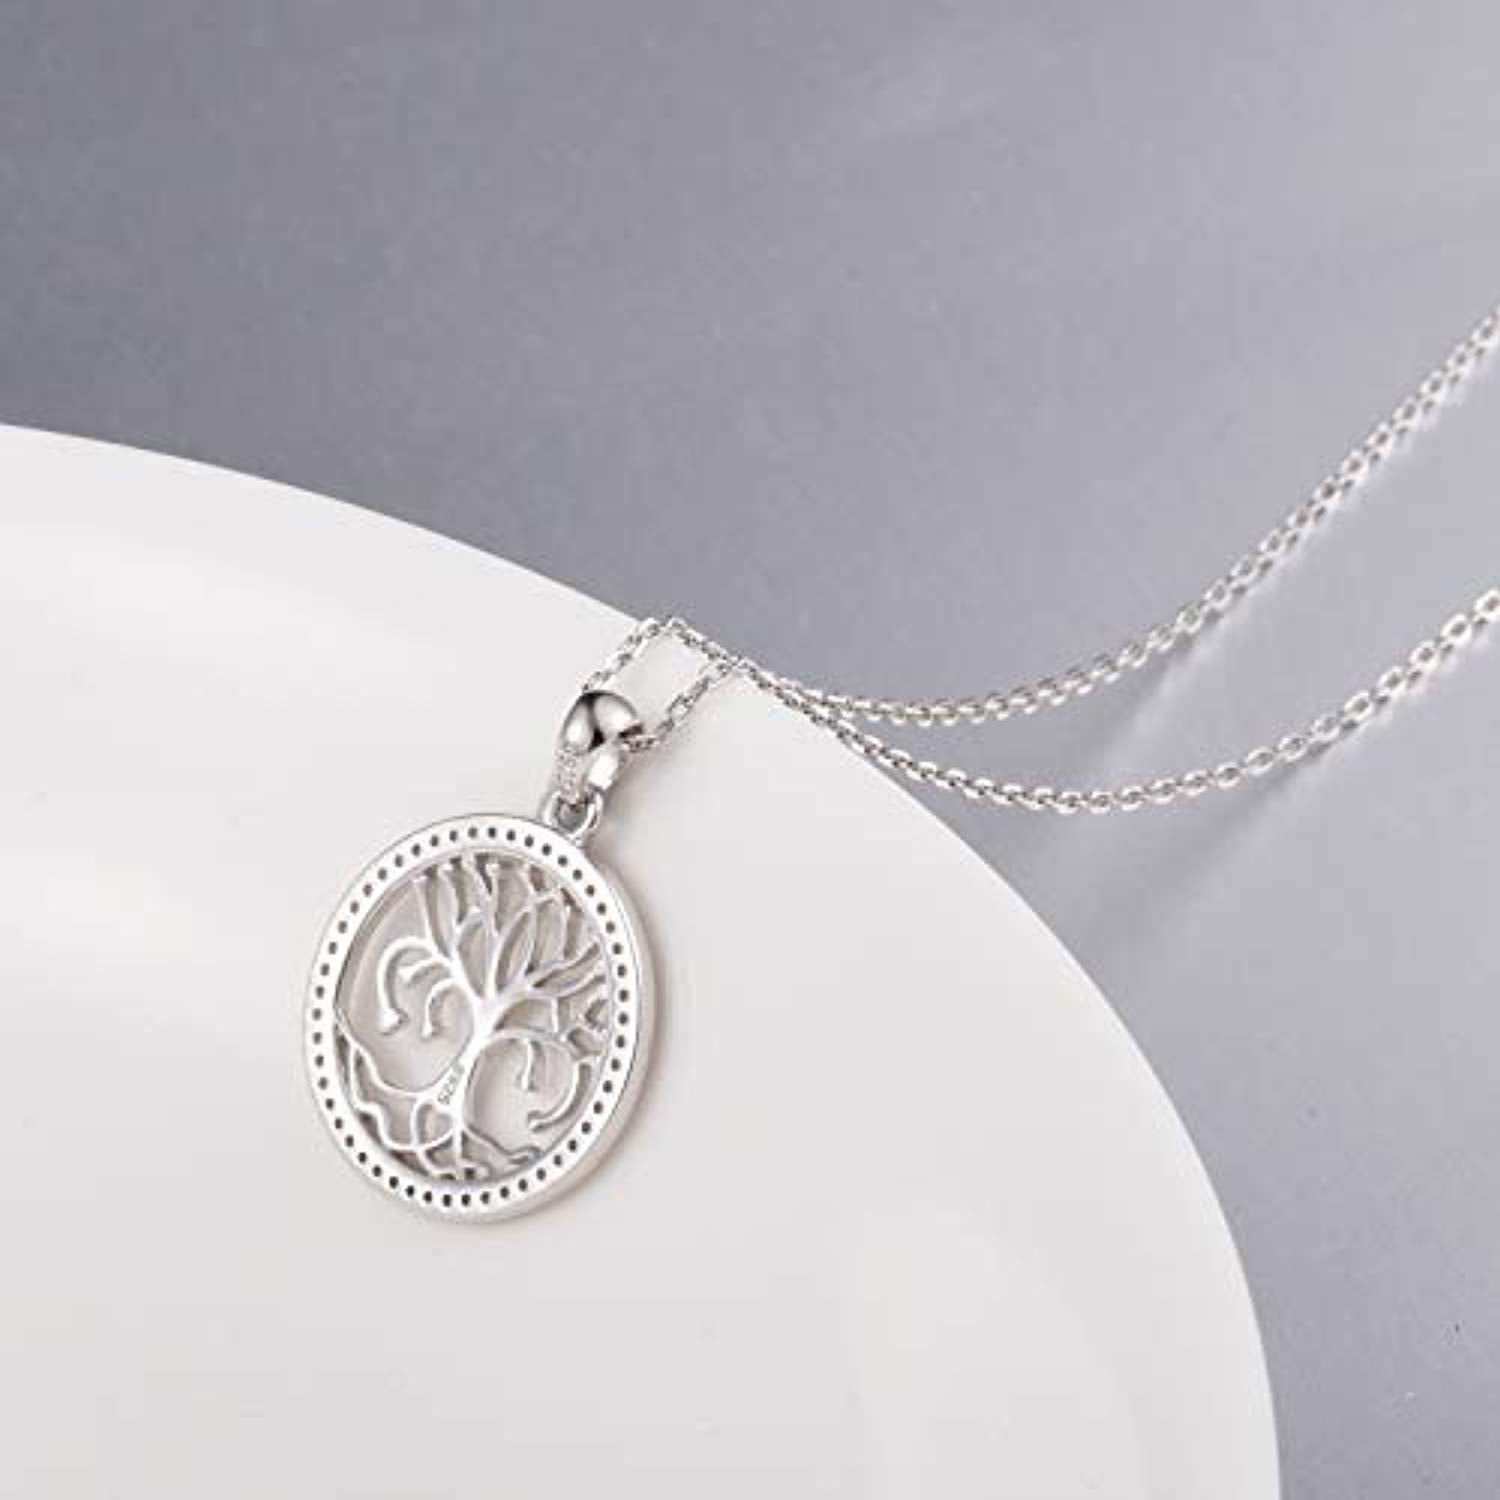 S925 Sterling Silver Tree of Life Love Heart Pendant Necklace for Girls Women